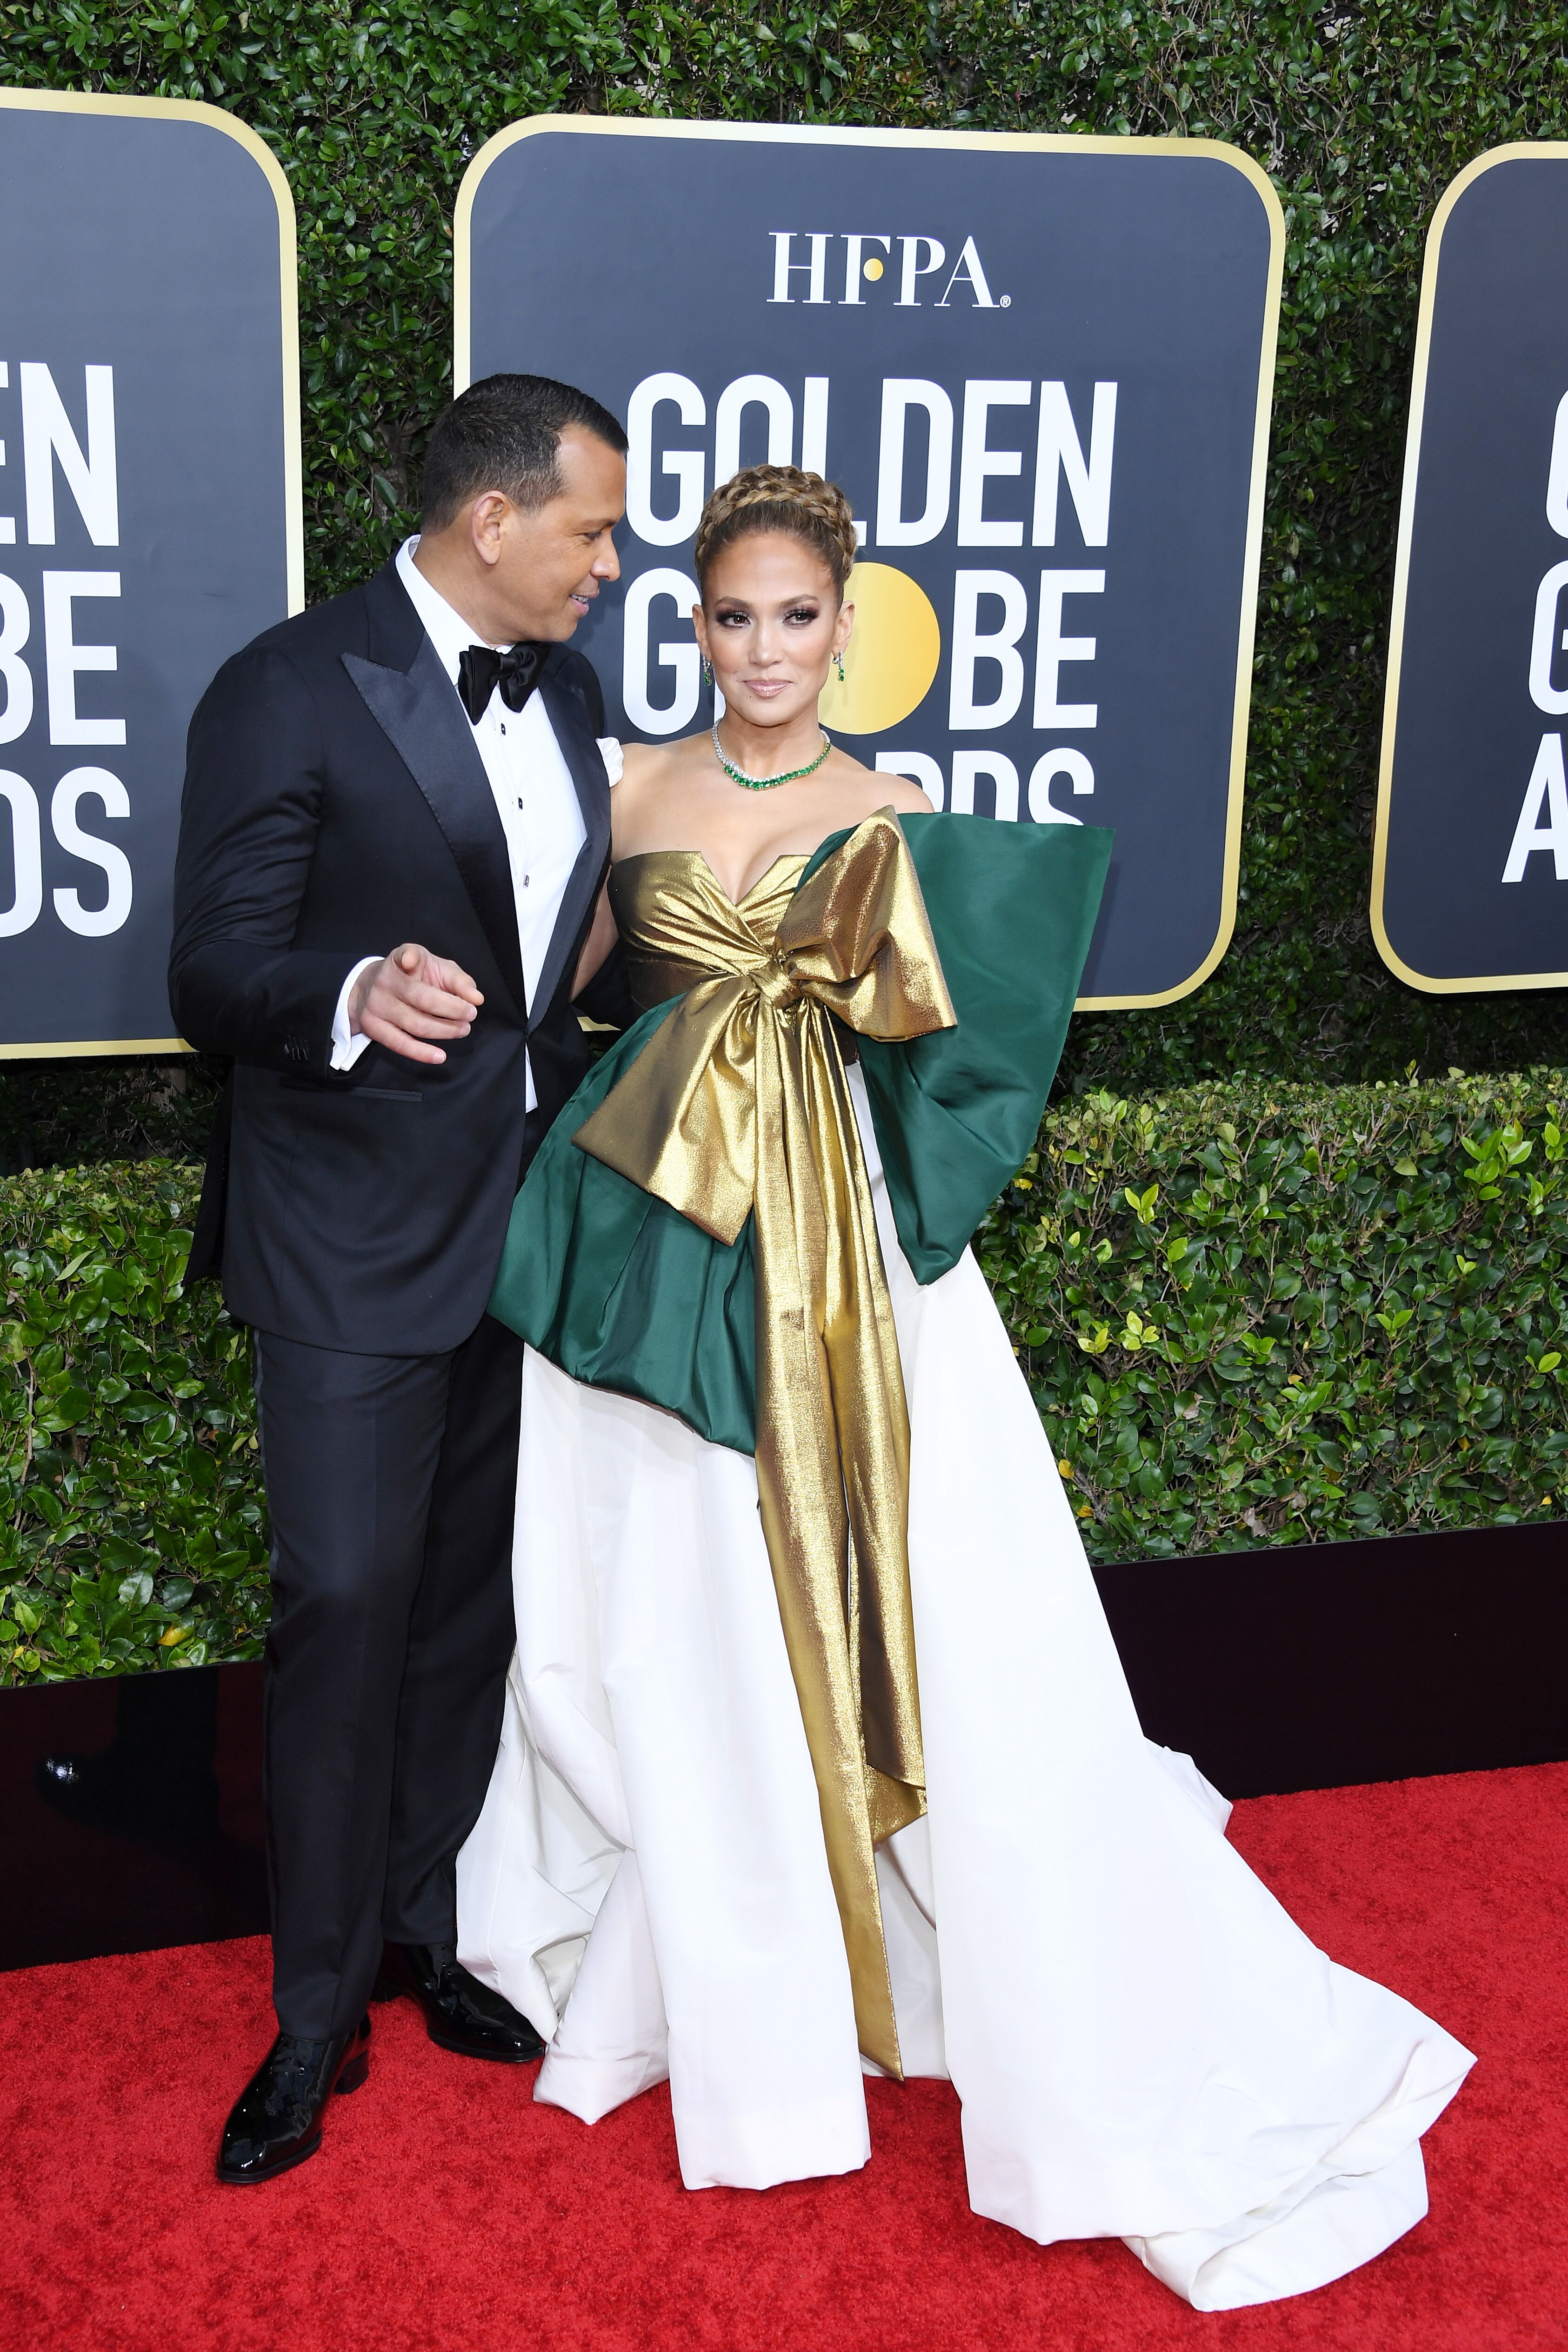 Alex Rodriguez and Jennifer Lopez at the 77th Annual Golden Globe Awards on January 05, 2020, in Beverly Hills, California | Photo: Daniele Venturelli/WireImage/Getty Images